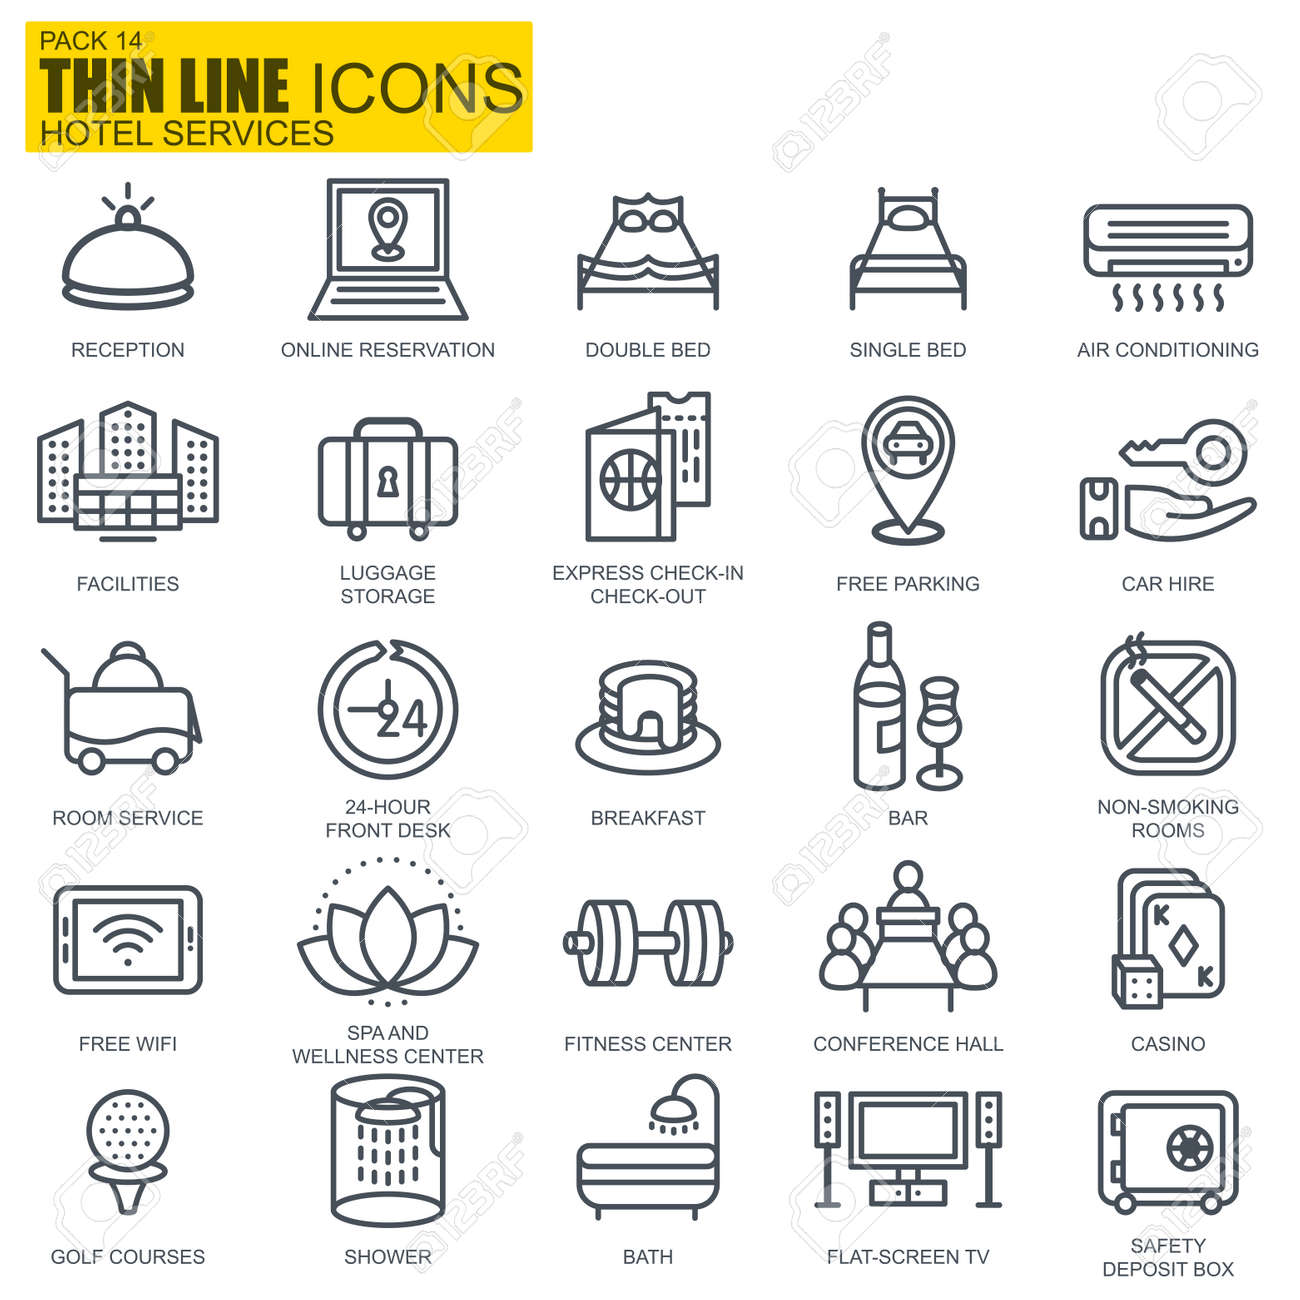 Booking Site Thin Line Hotel Services And Facilities Online Booking Icons